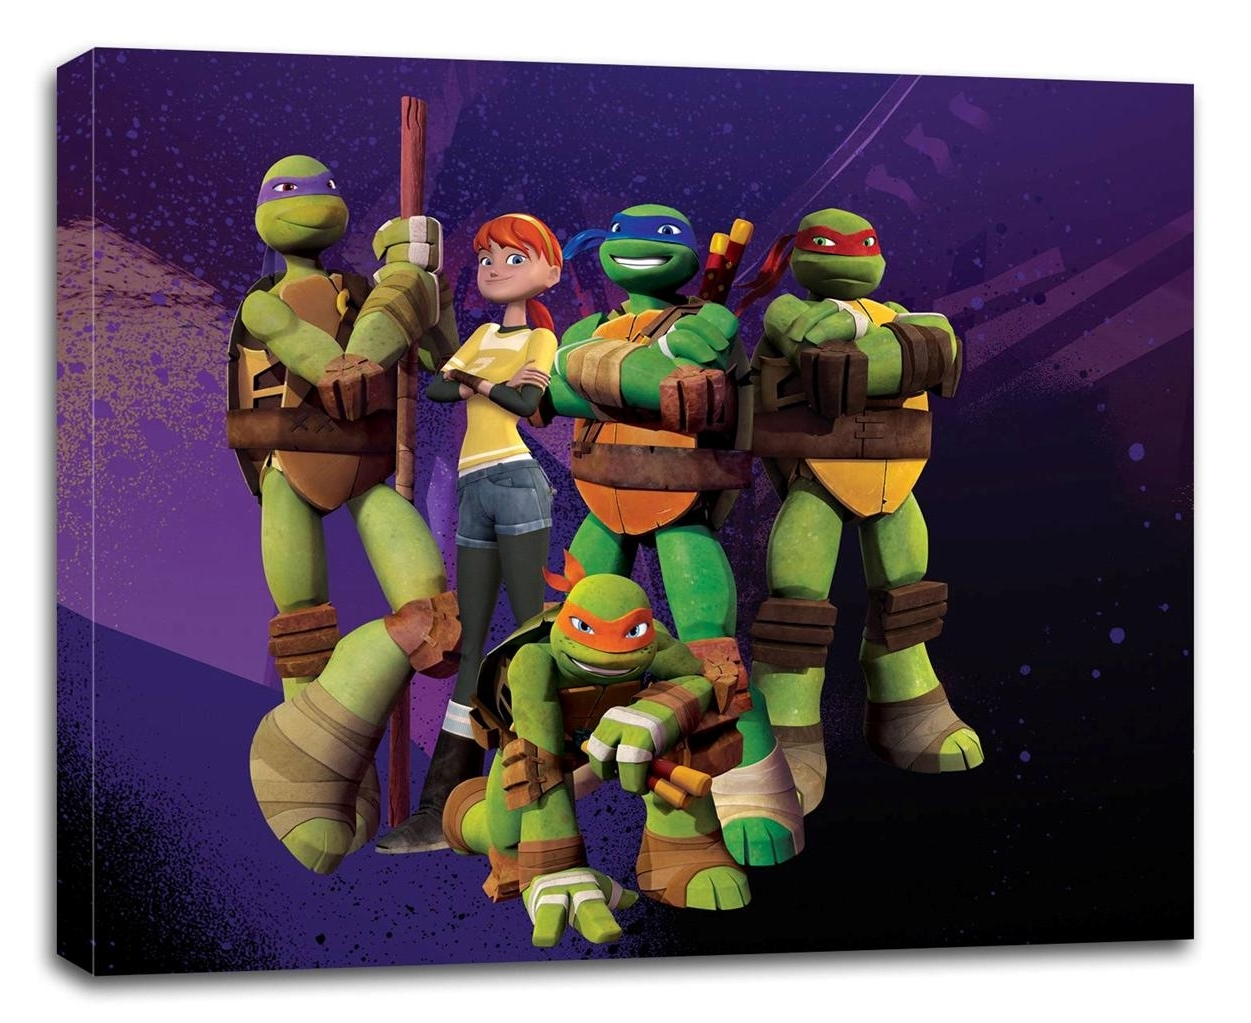 Tmnt Ninja Turtles Canvas Print Wall Decor Art Giclee Kids Bedroom Regarding Best And Newest Tmnt Wall Art (View 12 of 15)